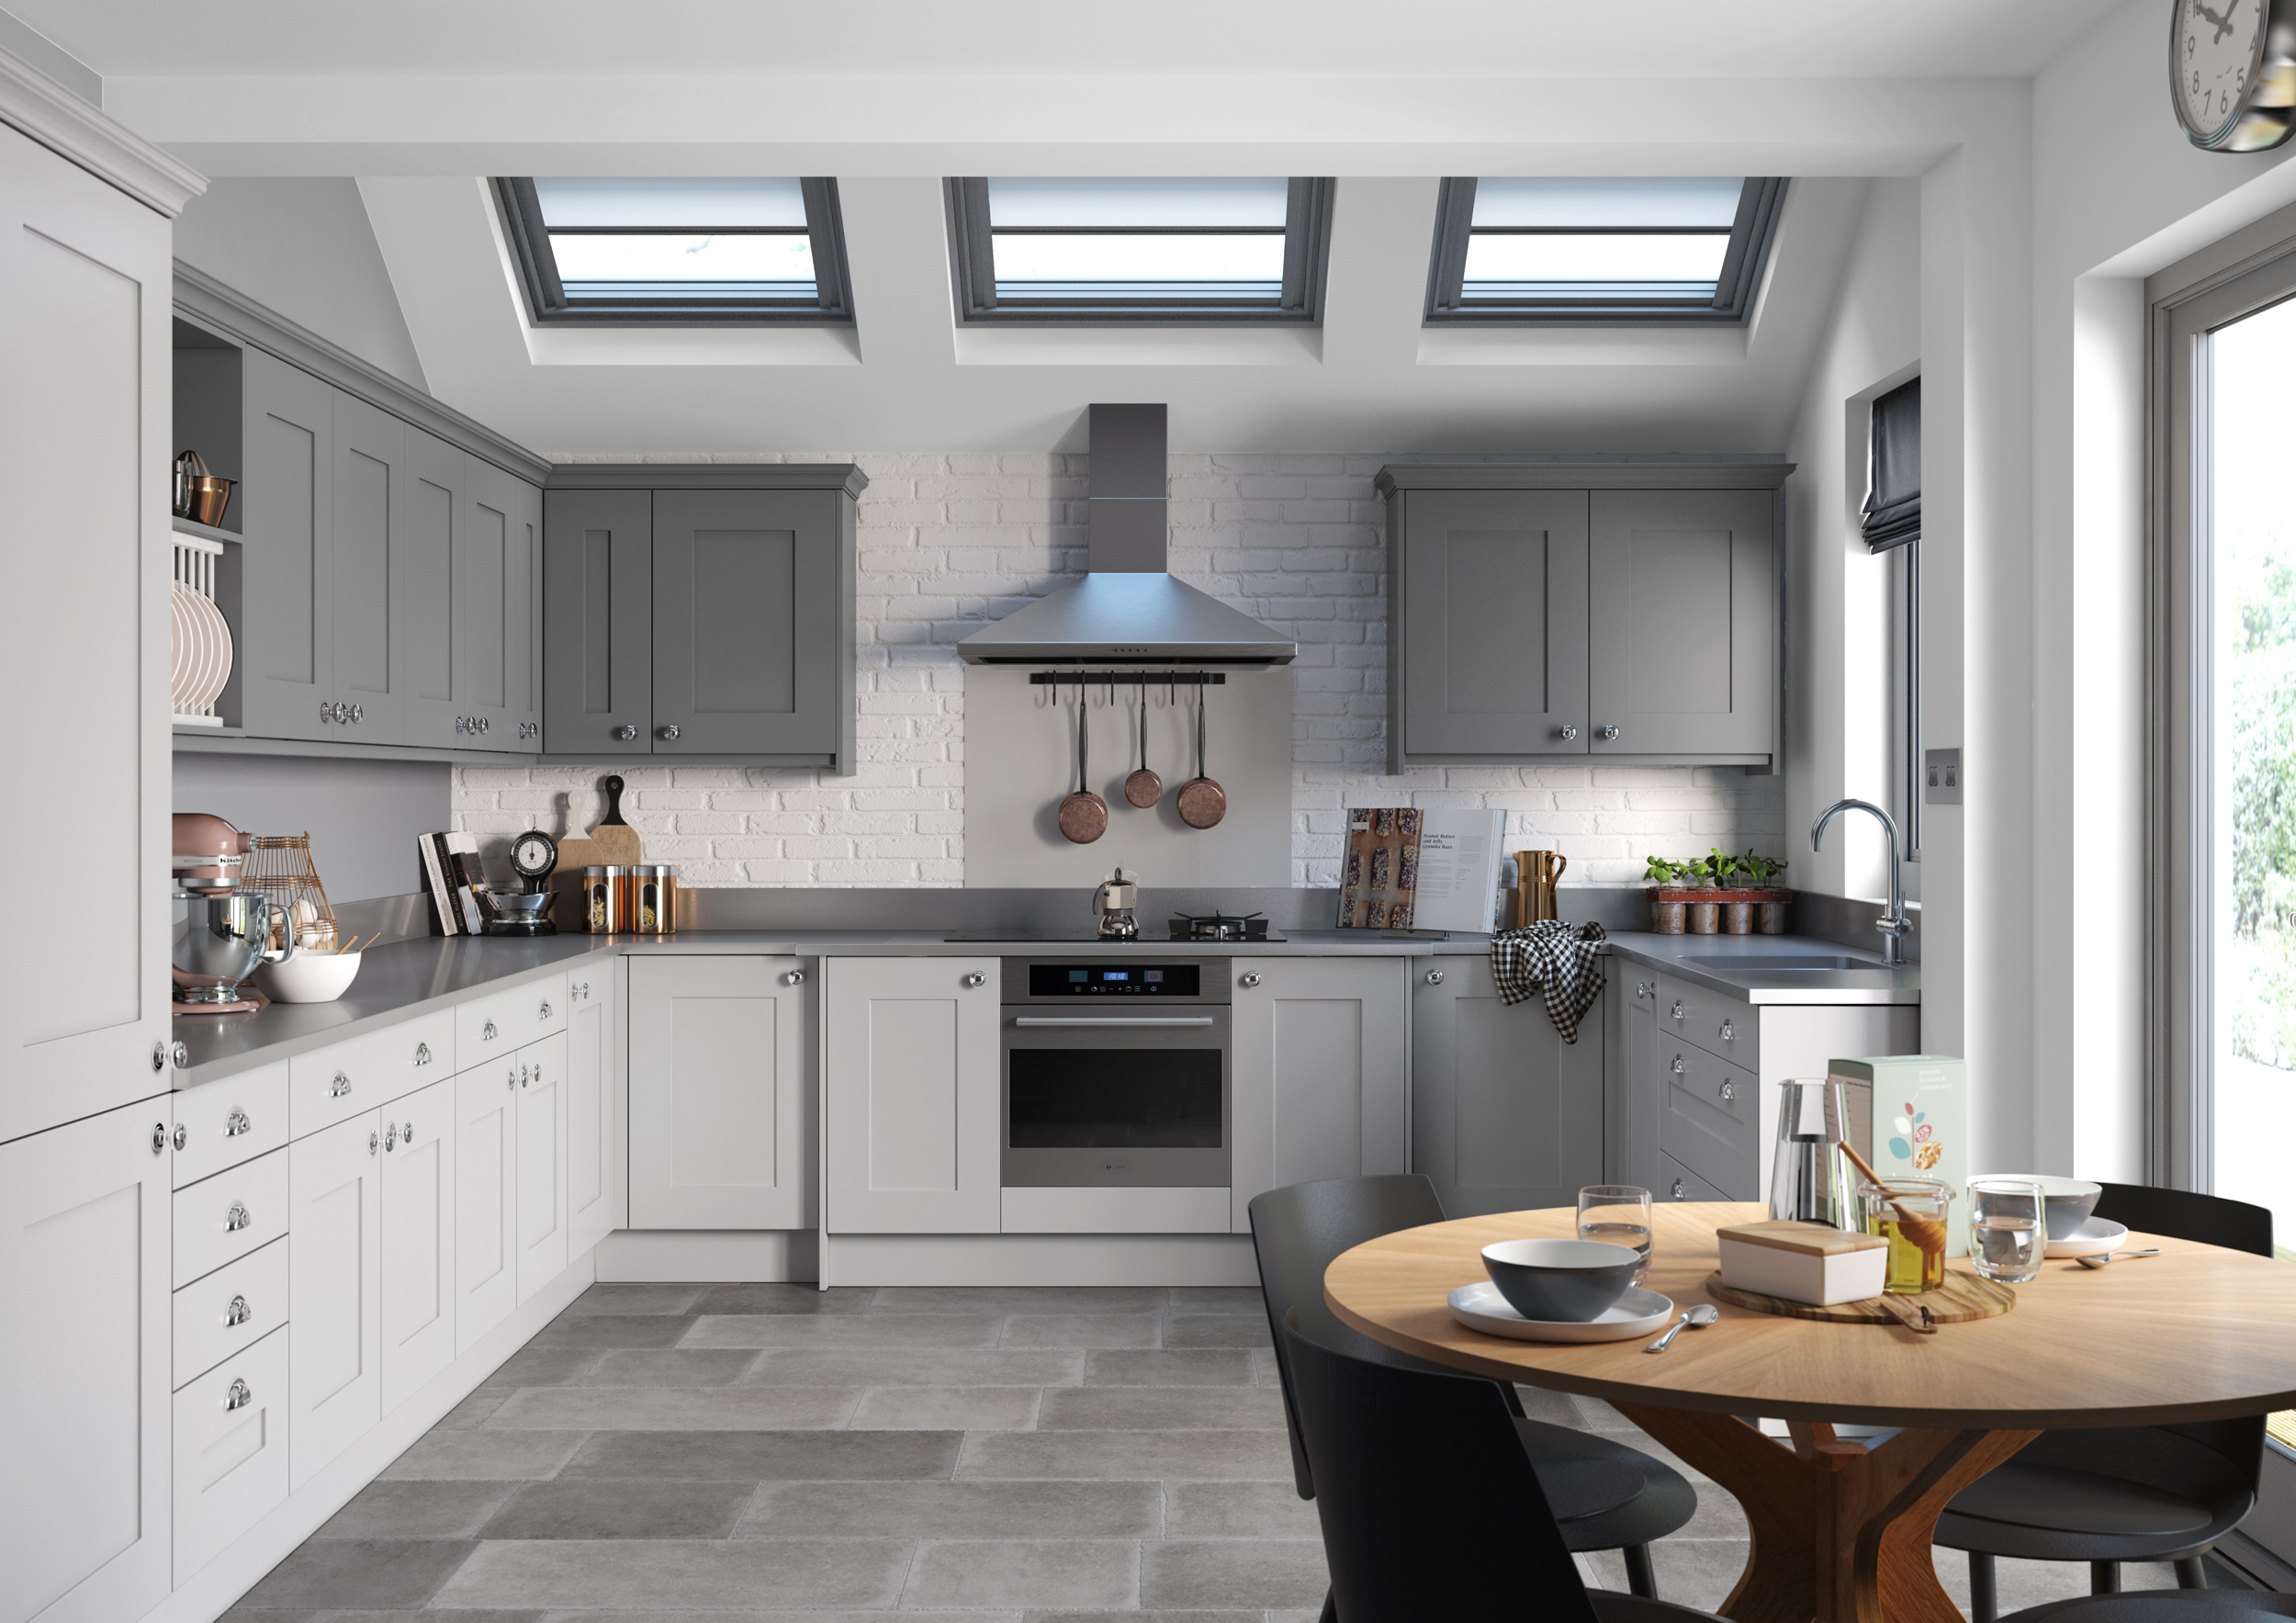 U Shaped Kitchen Ideas 8 Great Designs For Any Sized Space Homebuilding